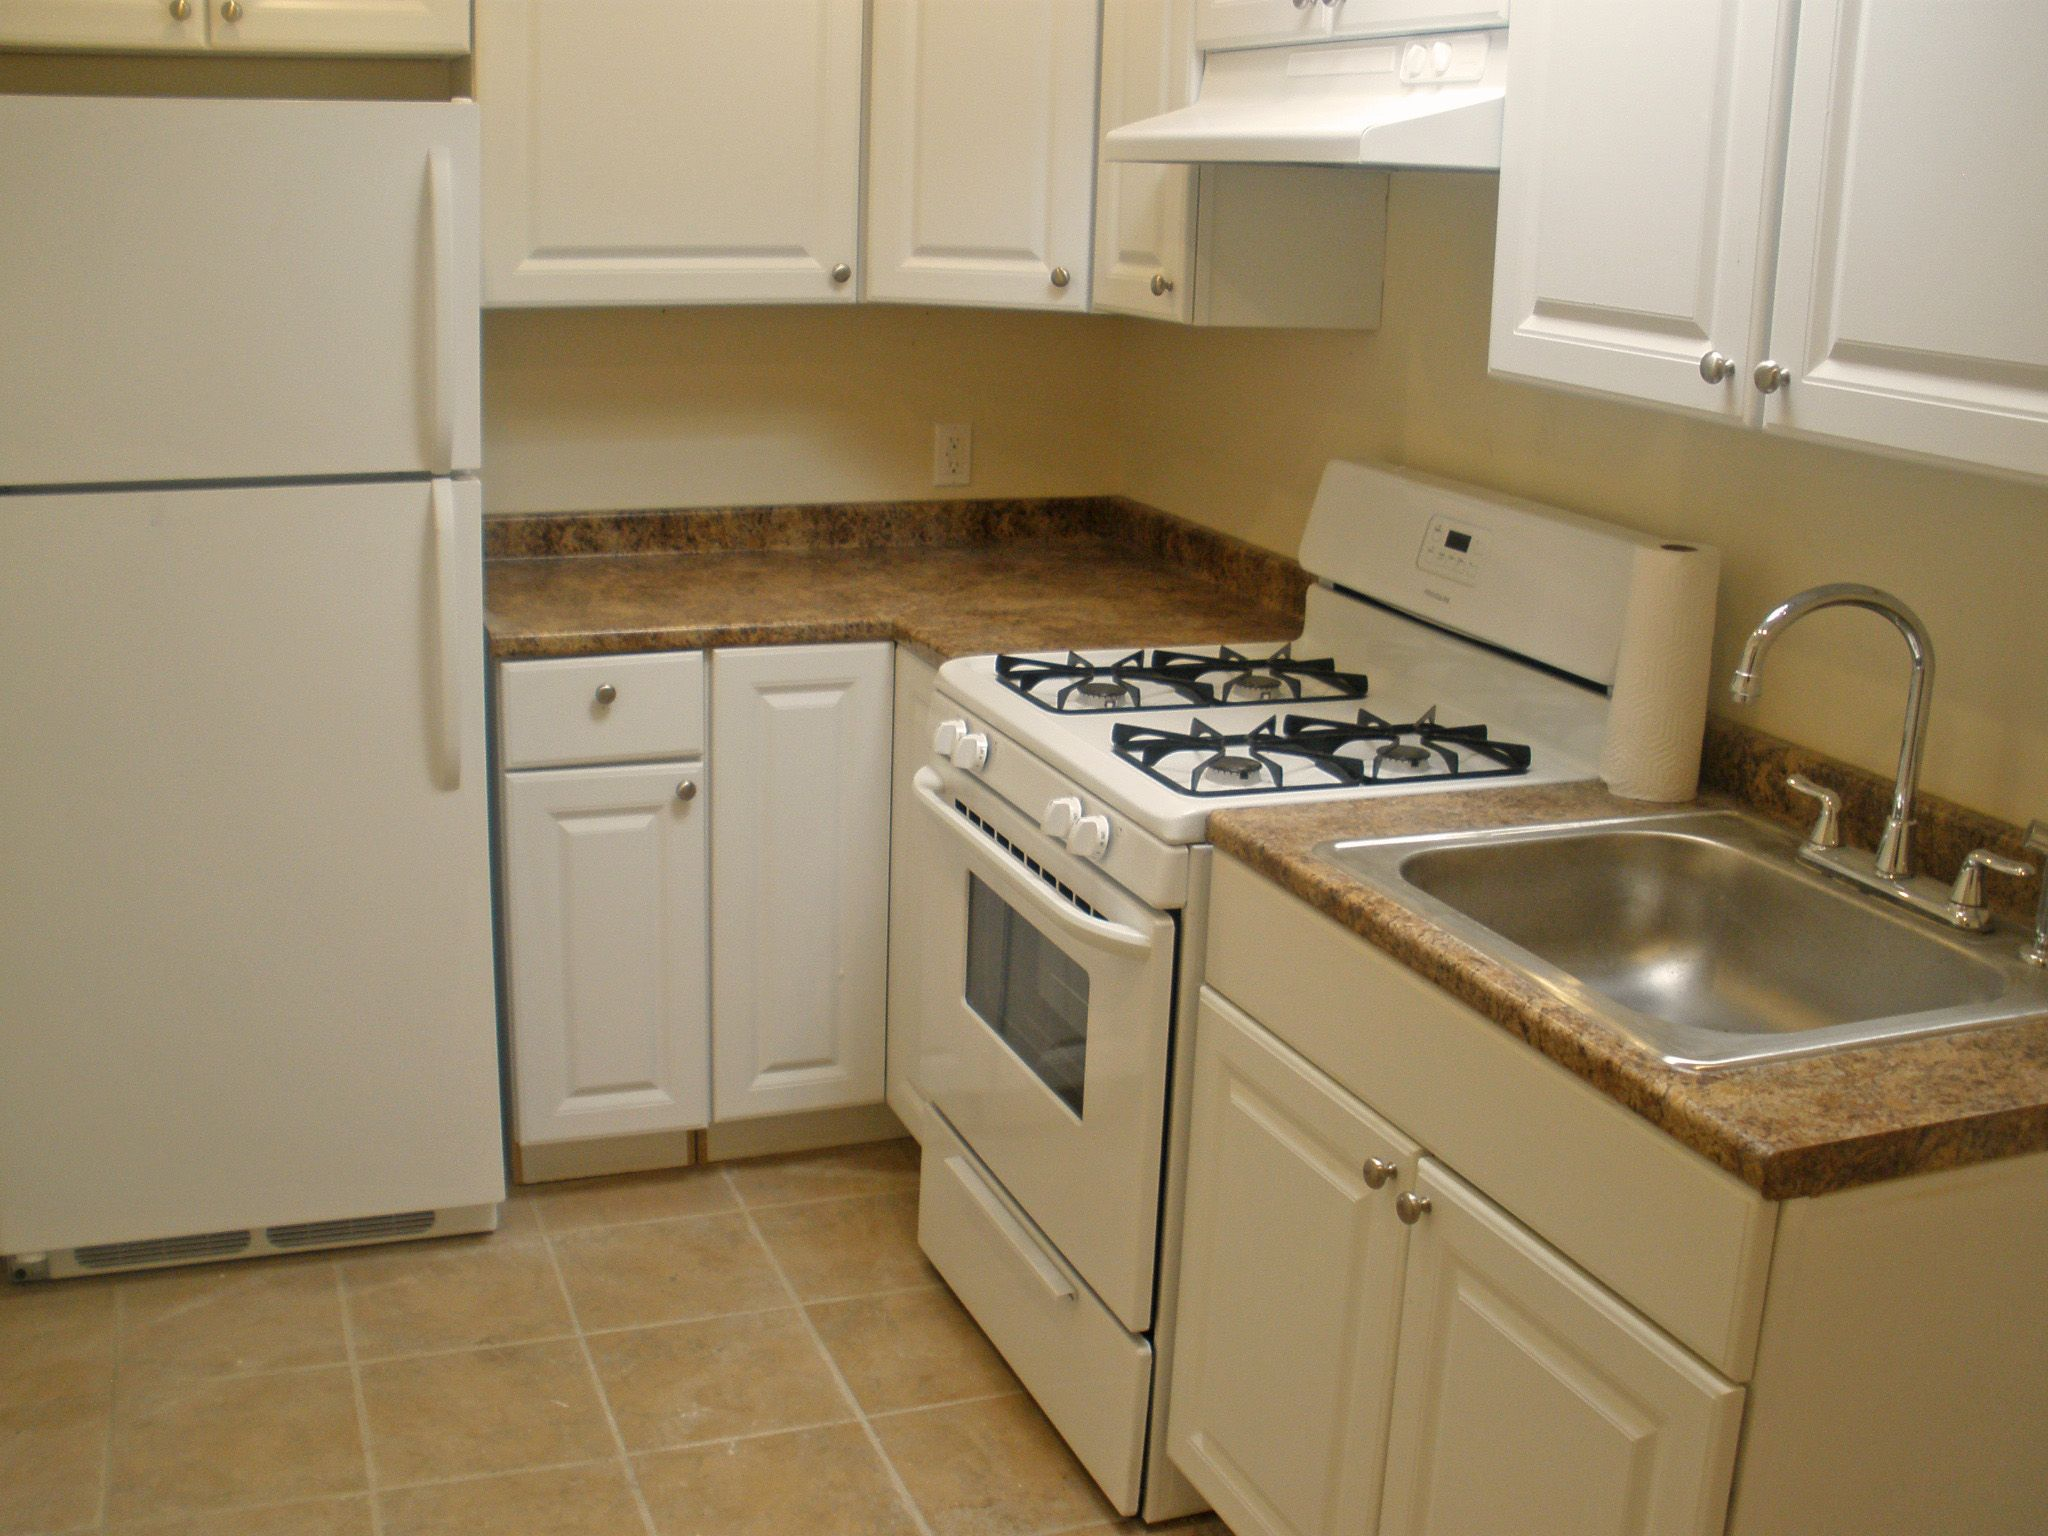 Two Bedroom Apartments For Rent Magnificent 2 Bedroom Apartments  Bedroom Apartment For Rent Bed Stuy Crg3092 Decorating Design